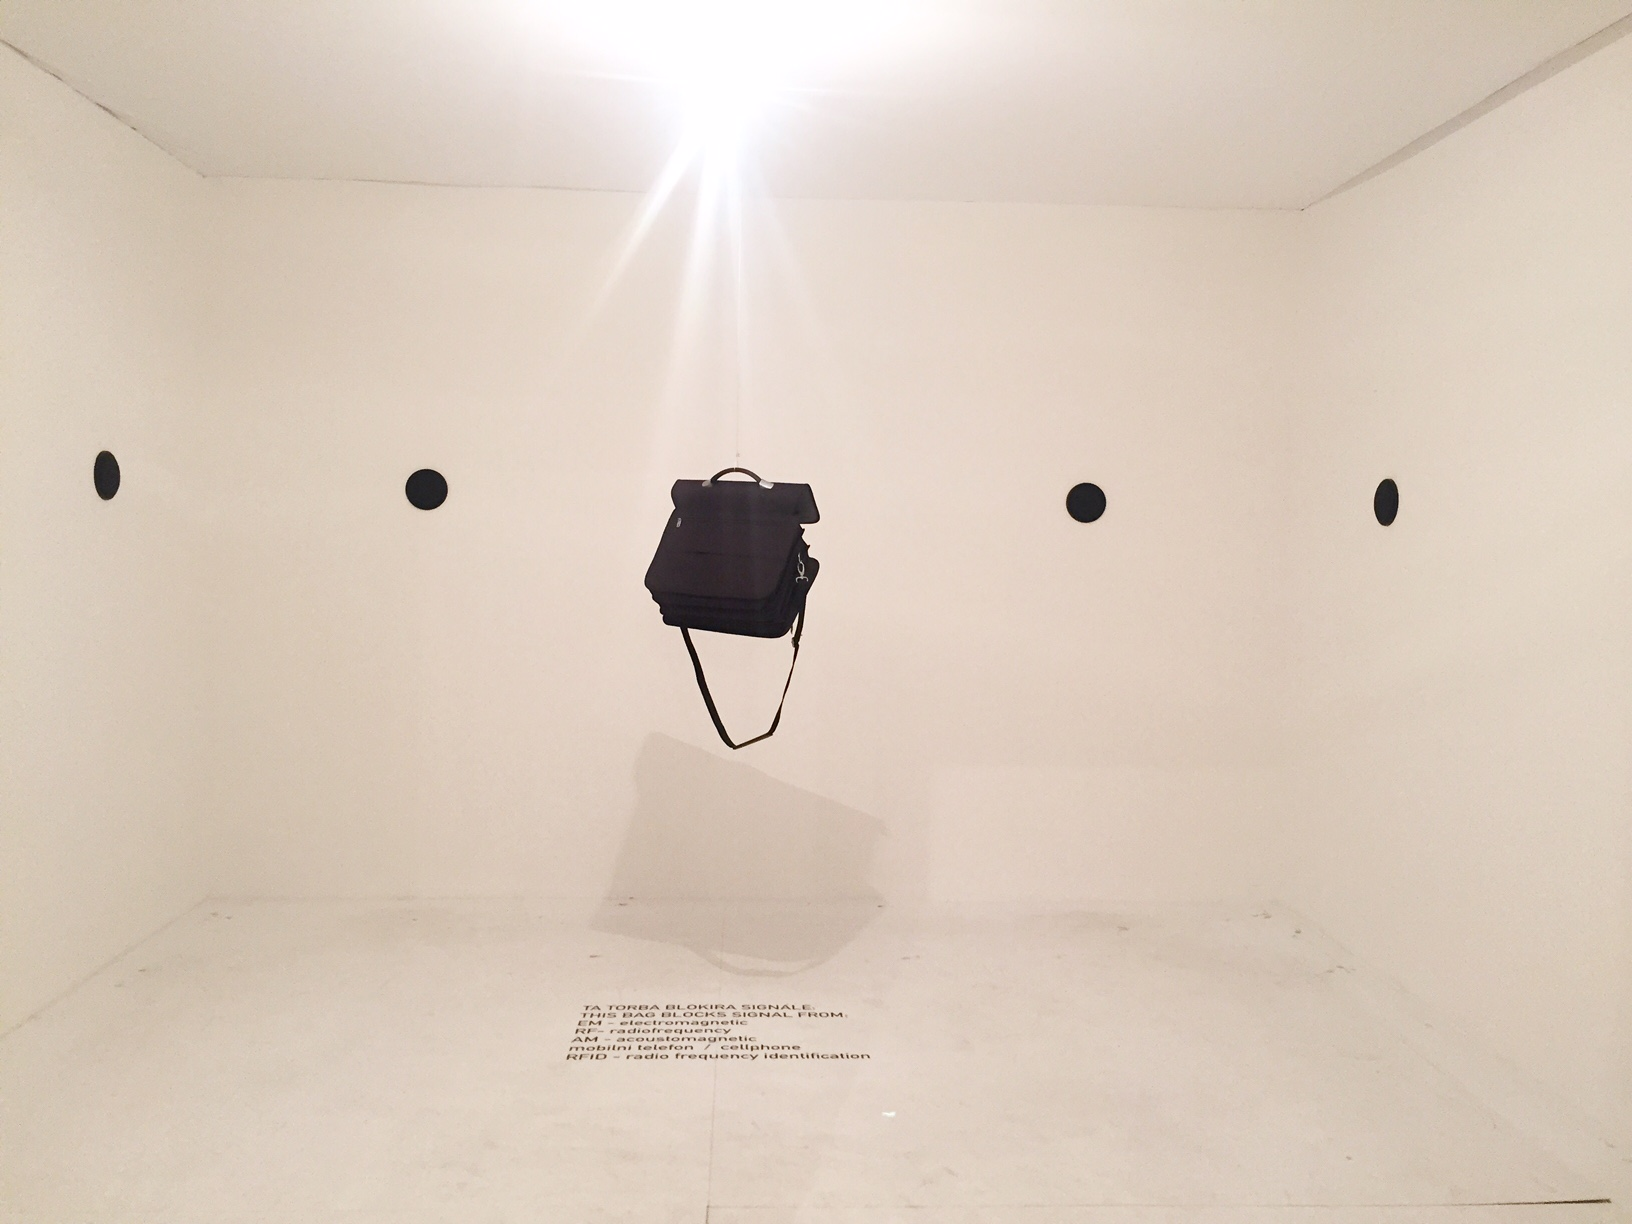 Why is there a messenger bag hanging up in a room? What does it mean?